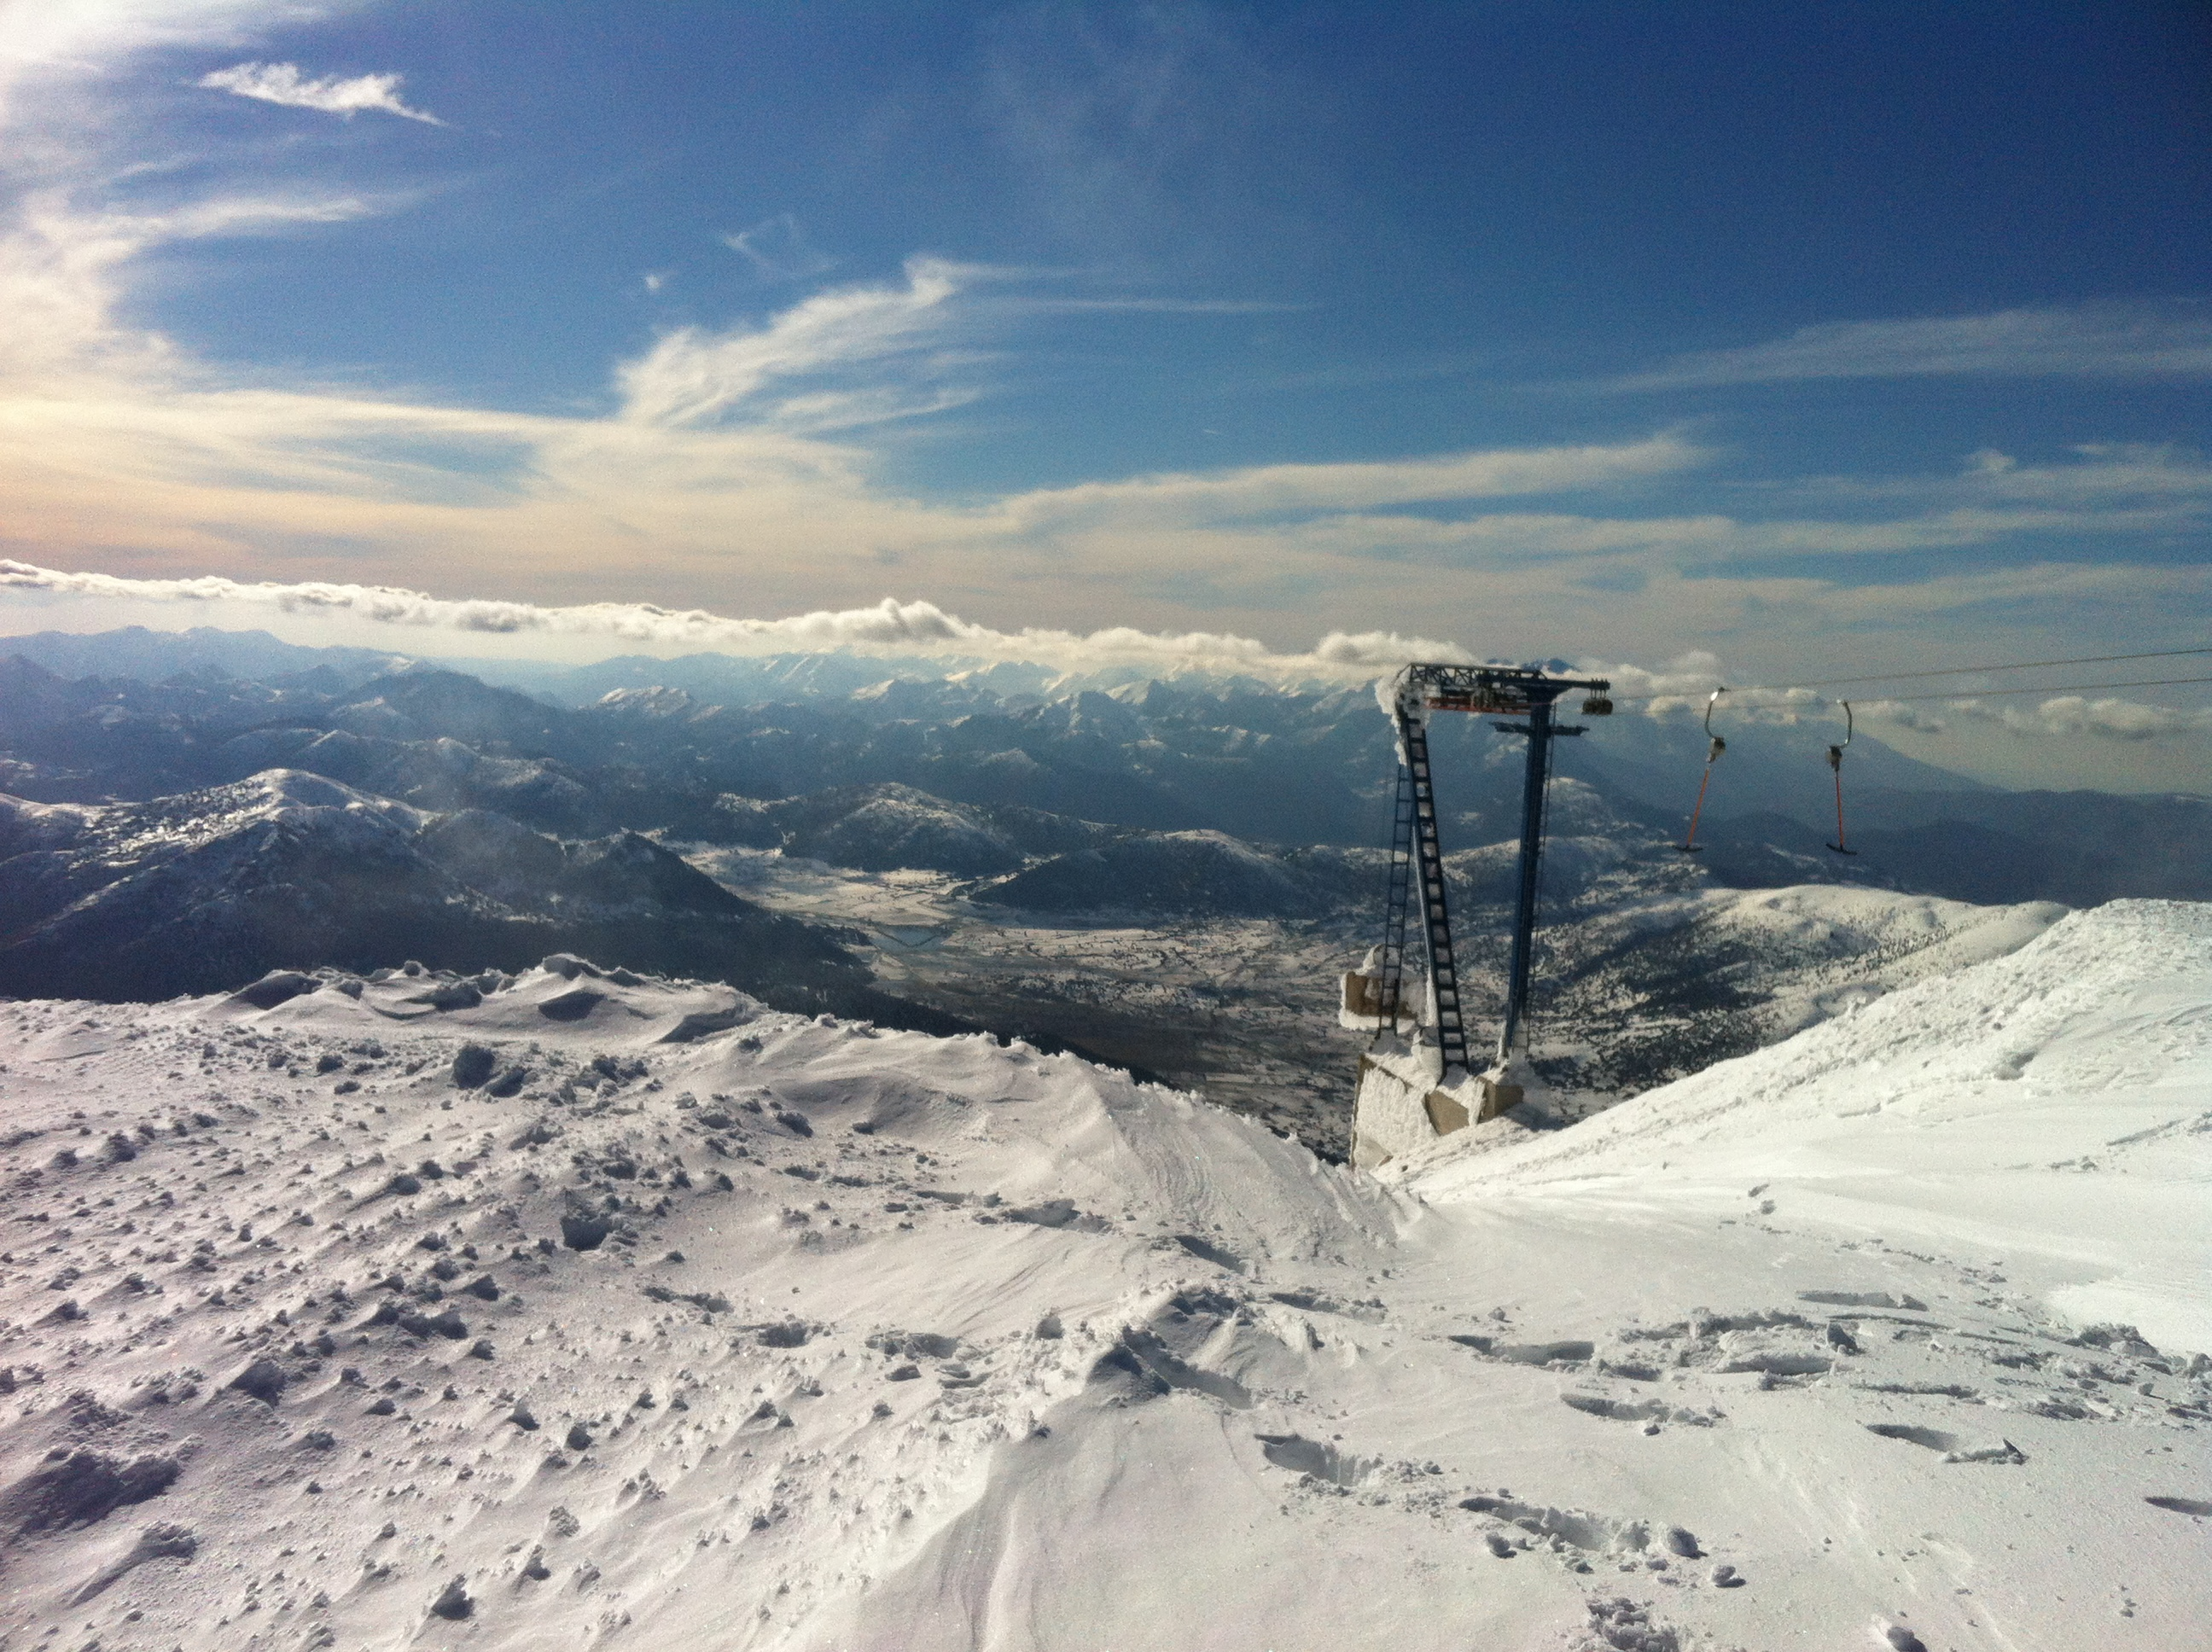 Looking west over Kalavrita from the top of the t-bar lift, Helmos, Kalavryta Ski Resort